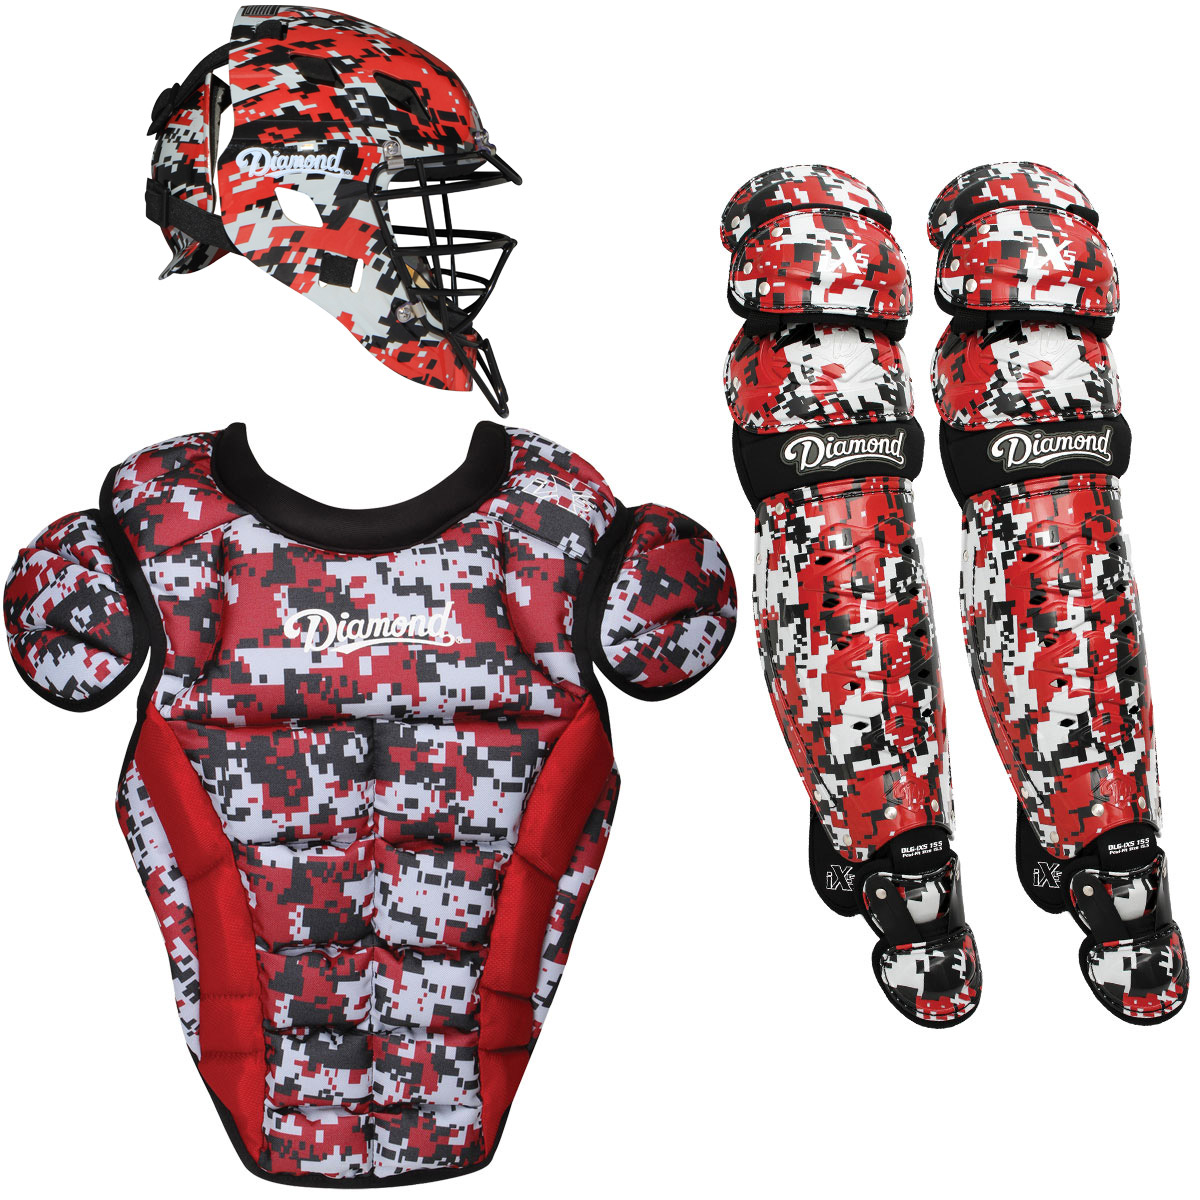 Diamond iX5 Pro Camo Intermediate Baseball Catcher's Package